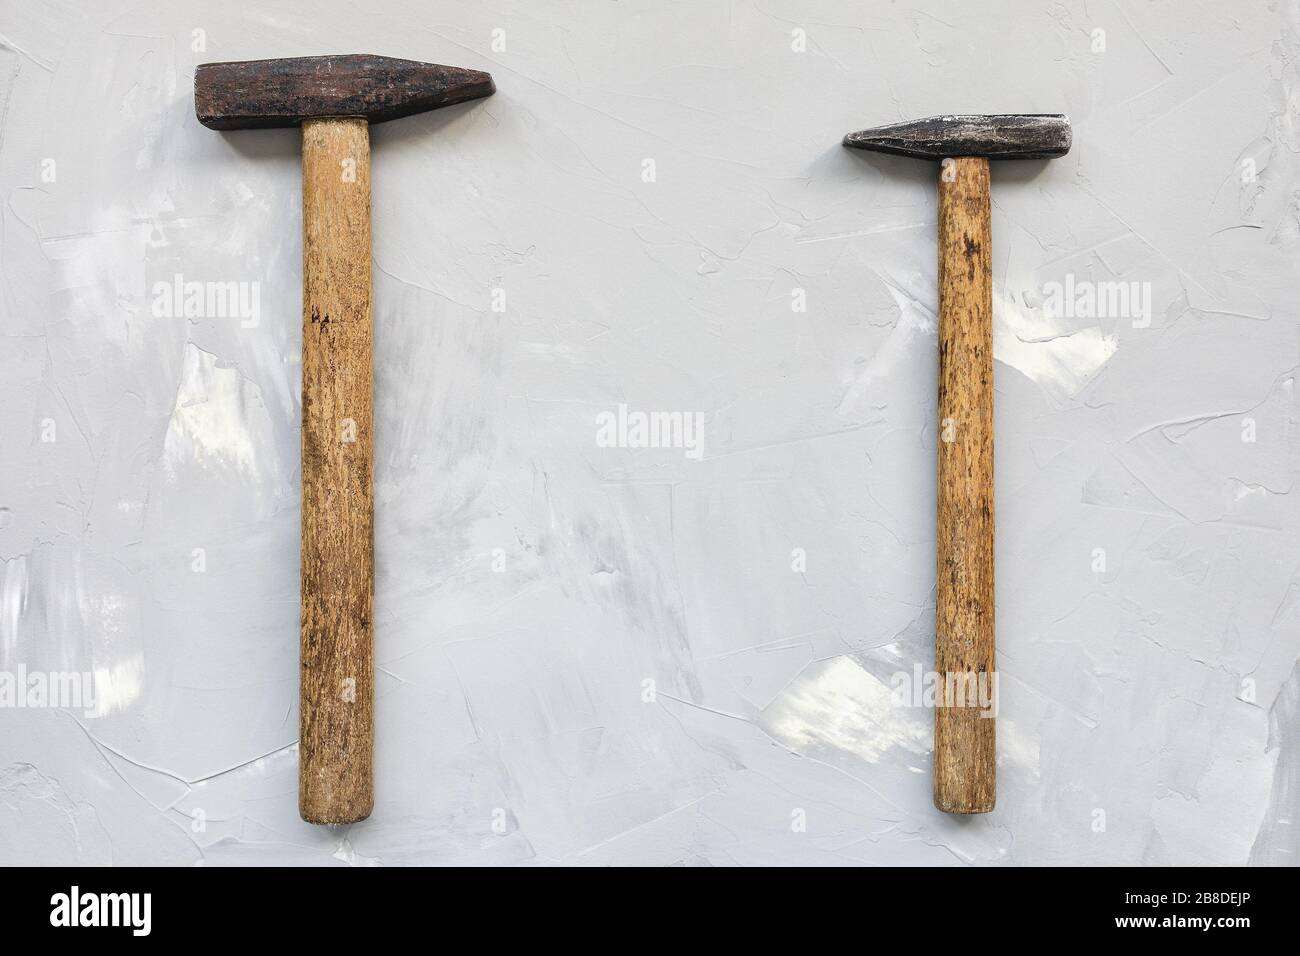 Two old rusty hammers on gray background, carpentry concept, copy space Stock Photo